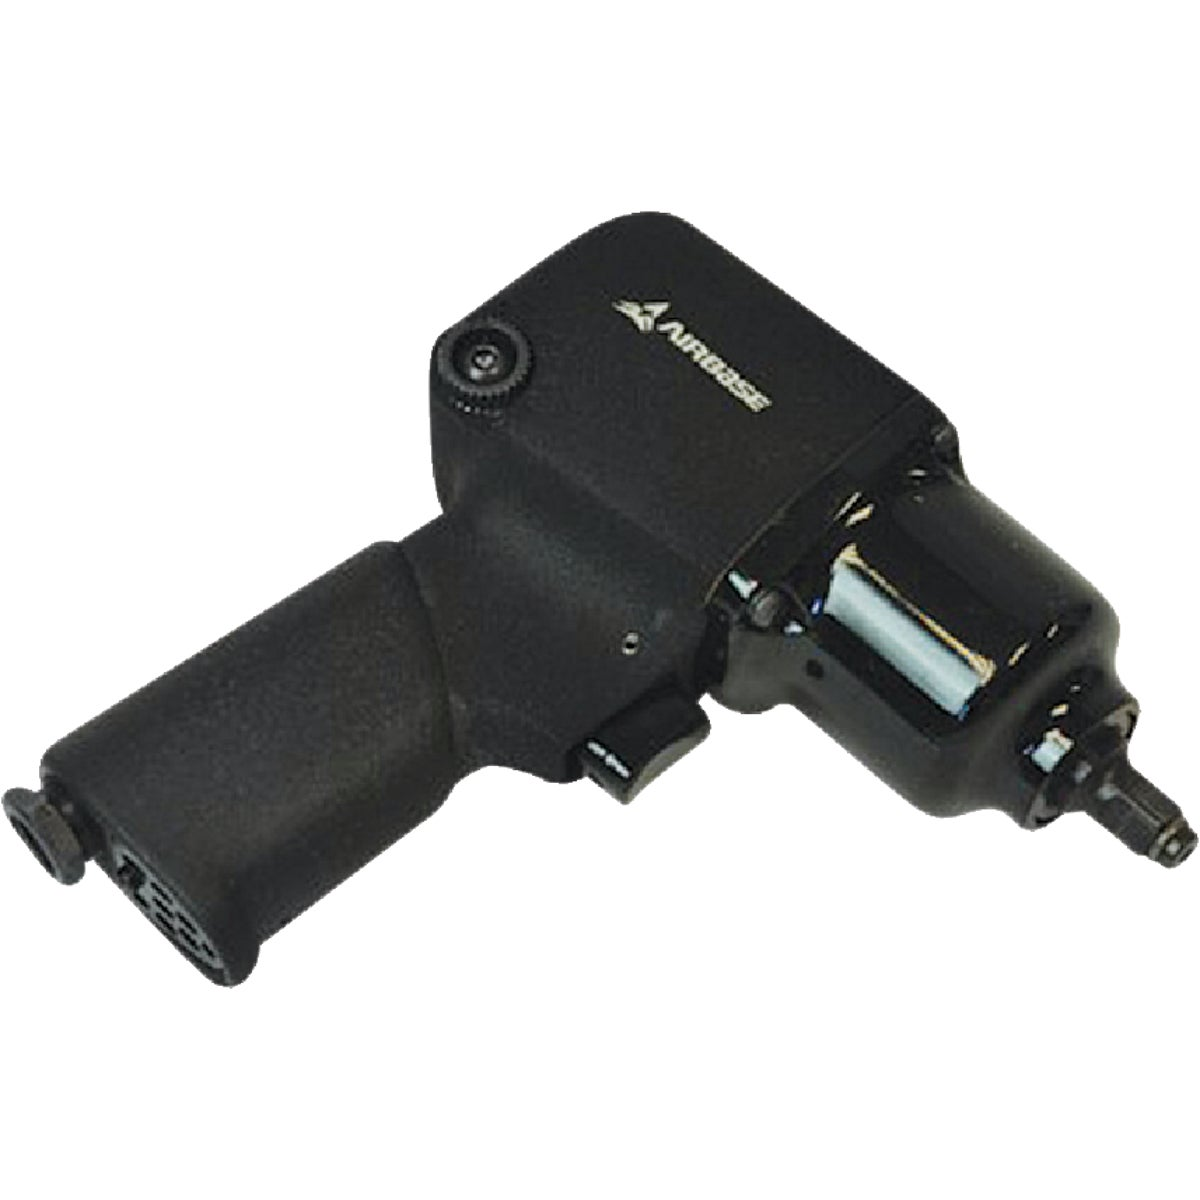 3/8 XTRME IMPACT WRENCH - 1355-XL by Aircat Pneumatic Tools